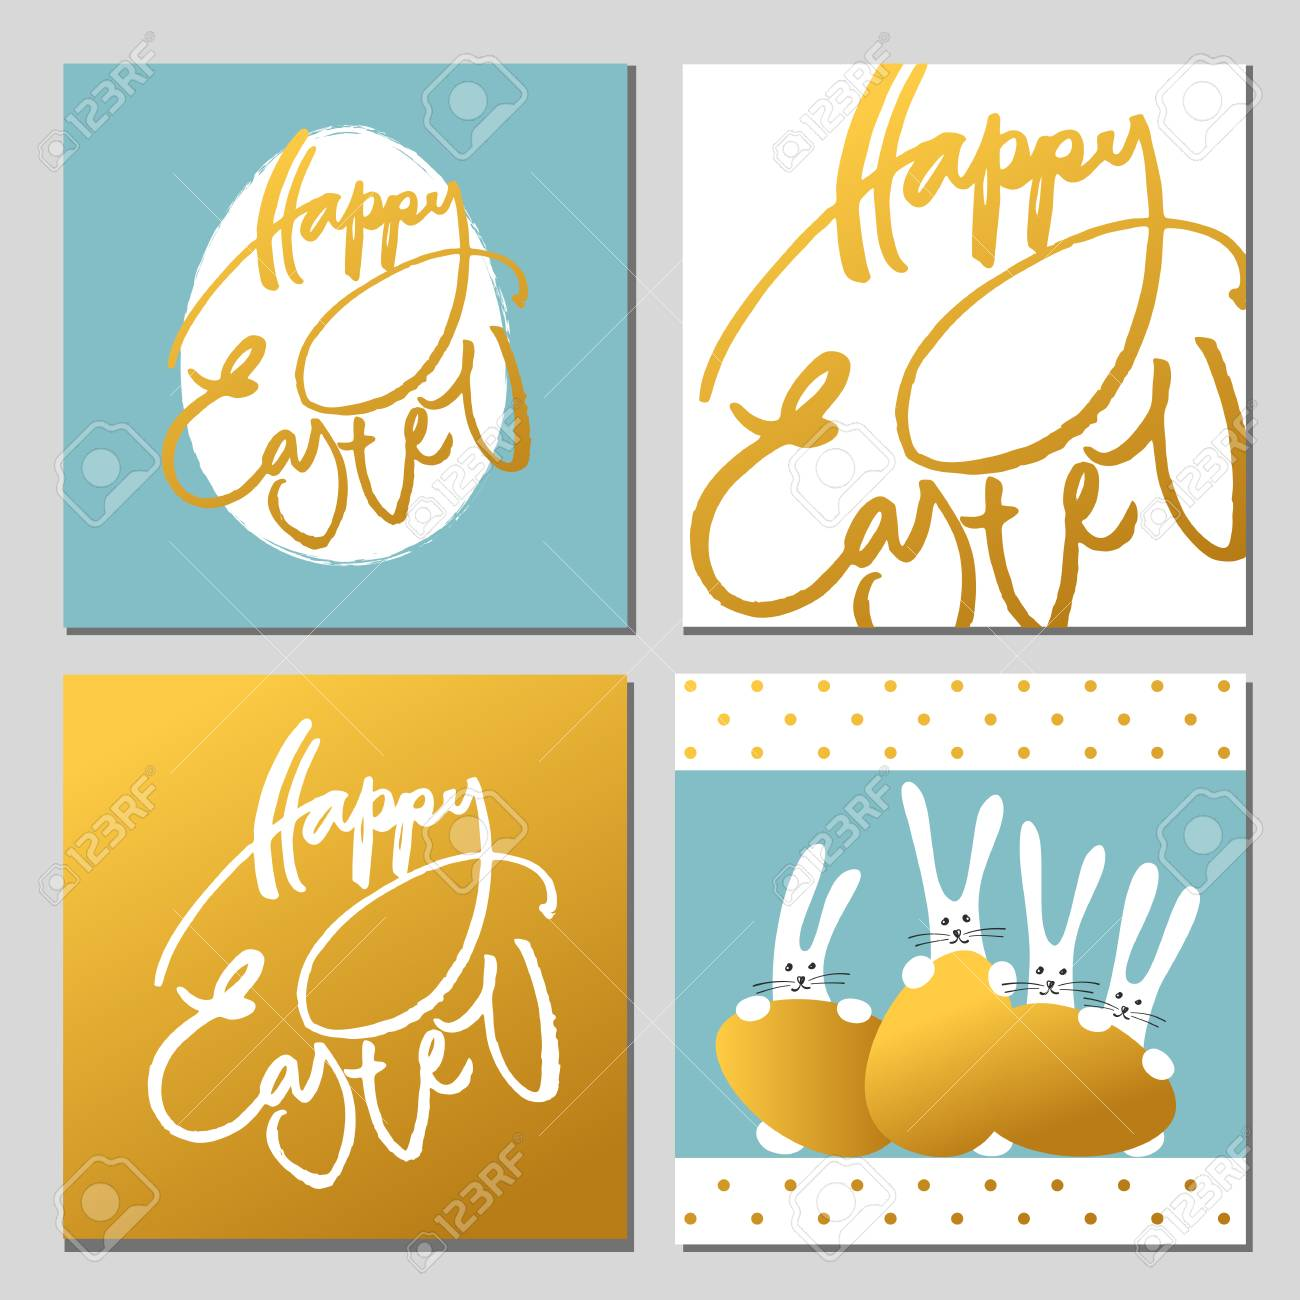 Gold Happy Easter Greeting Cards Collection With Rabbits Bunny